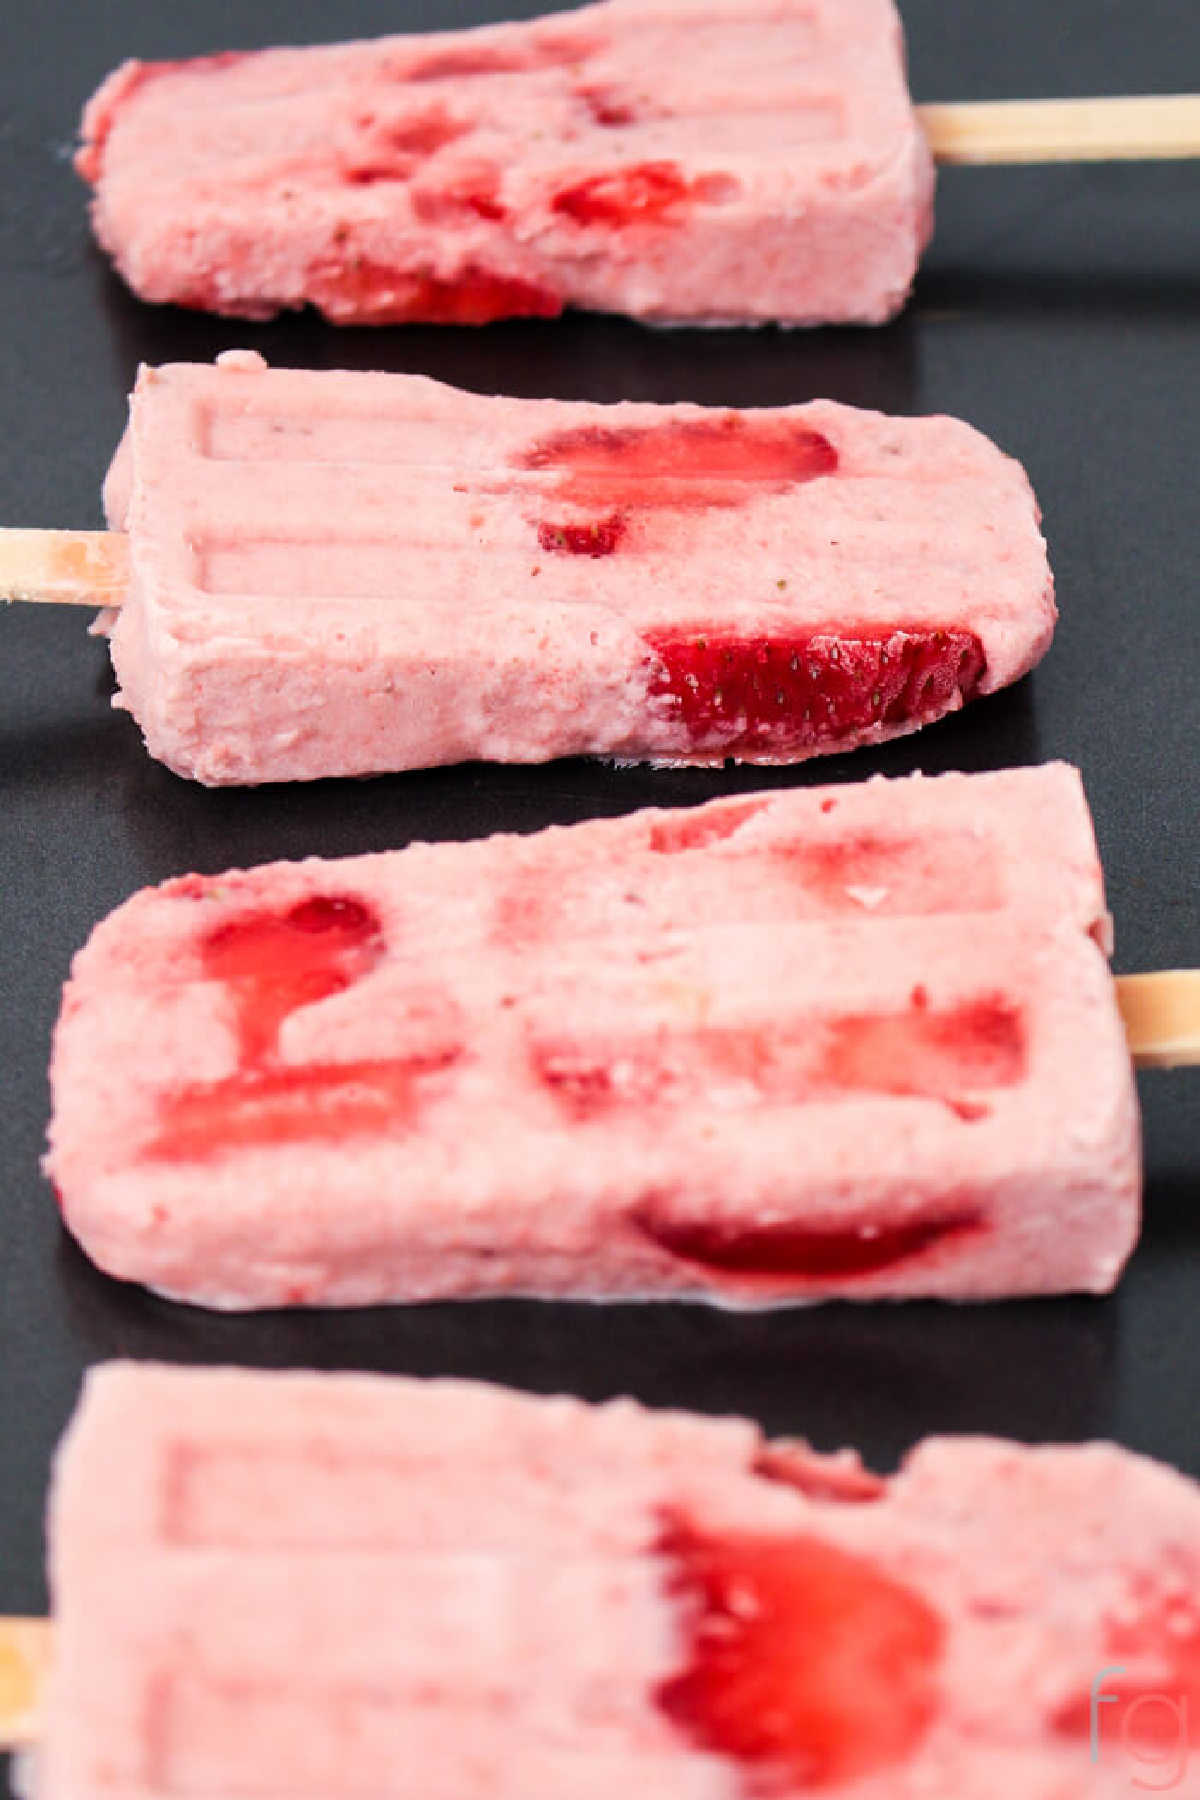 frozen strawberry banana smoothie popsicles on a dark background.